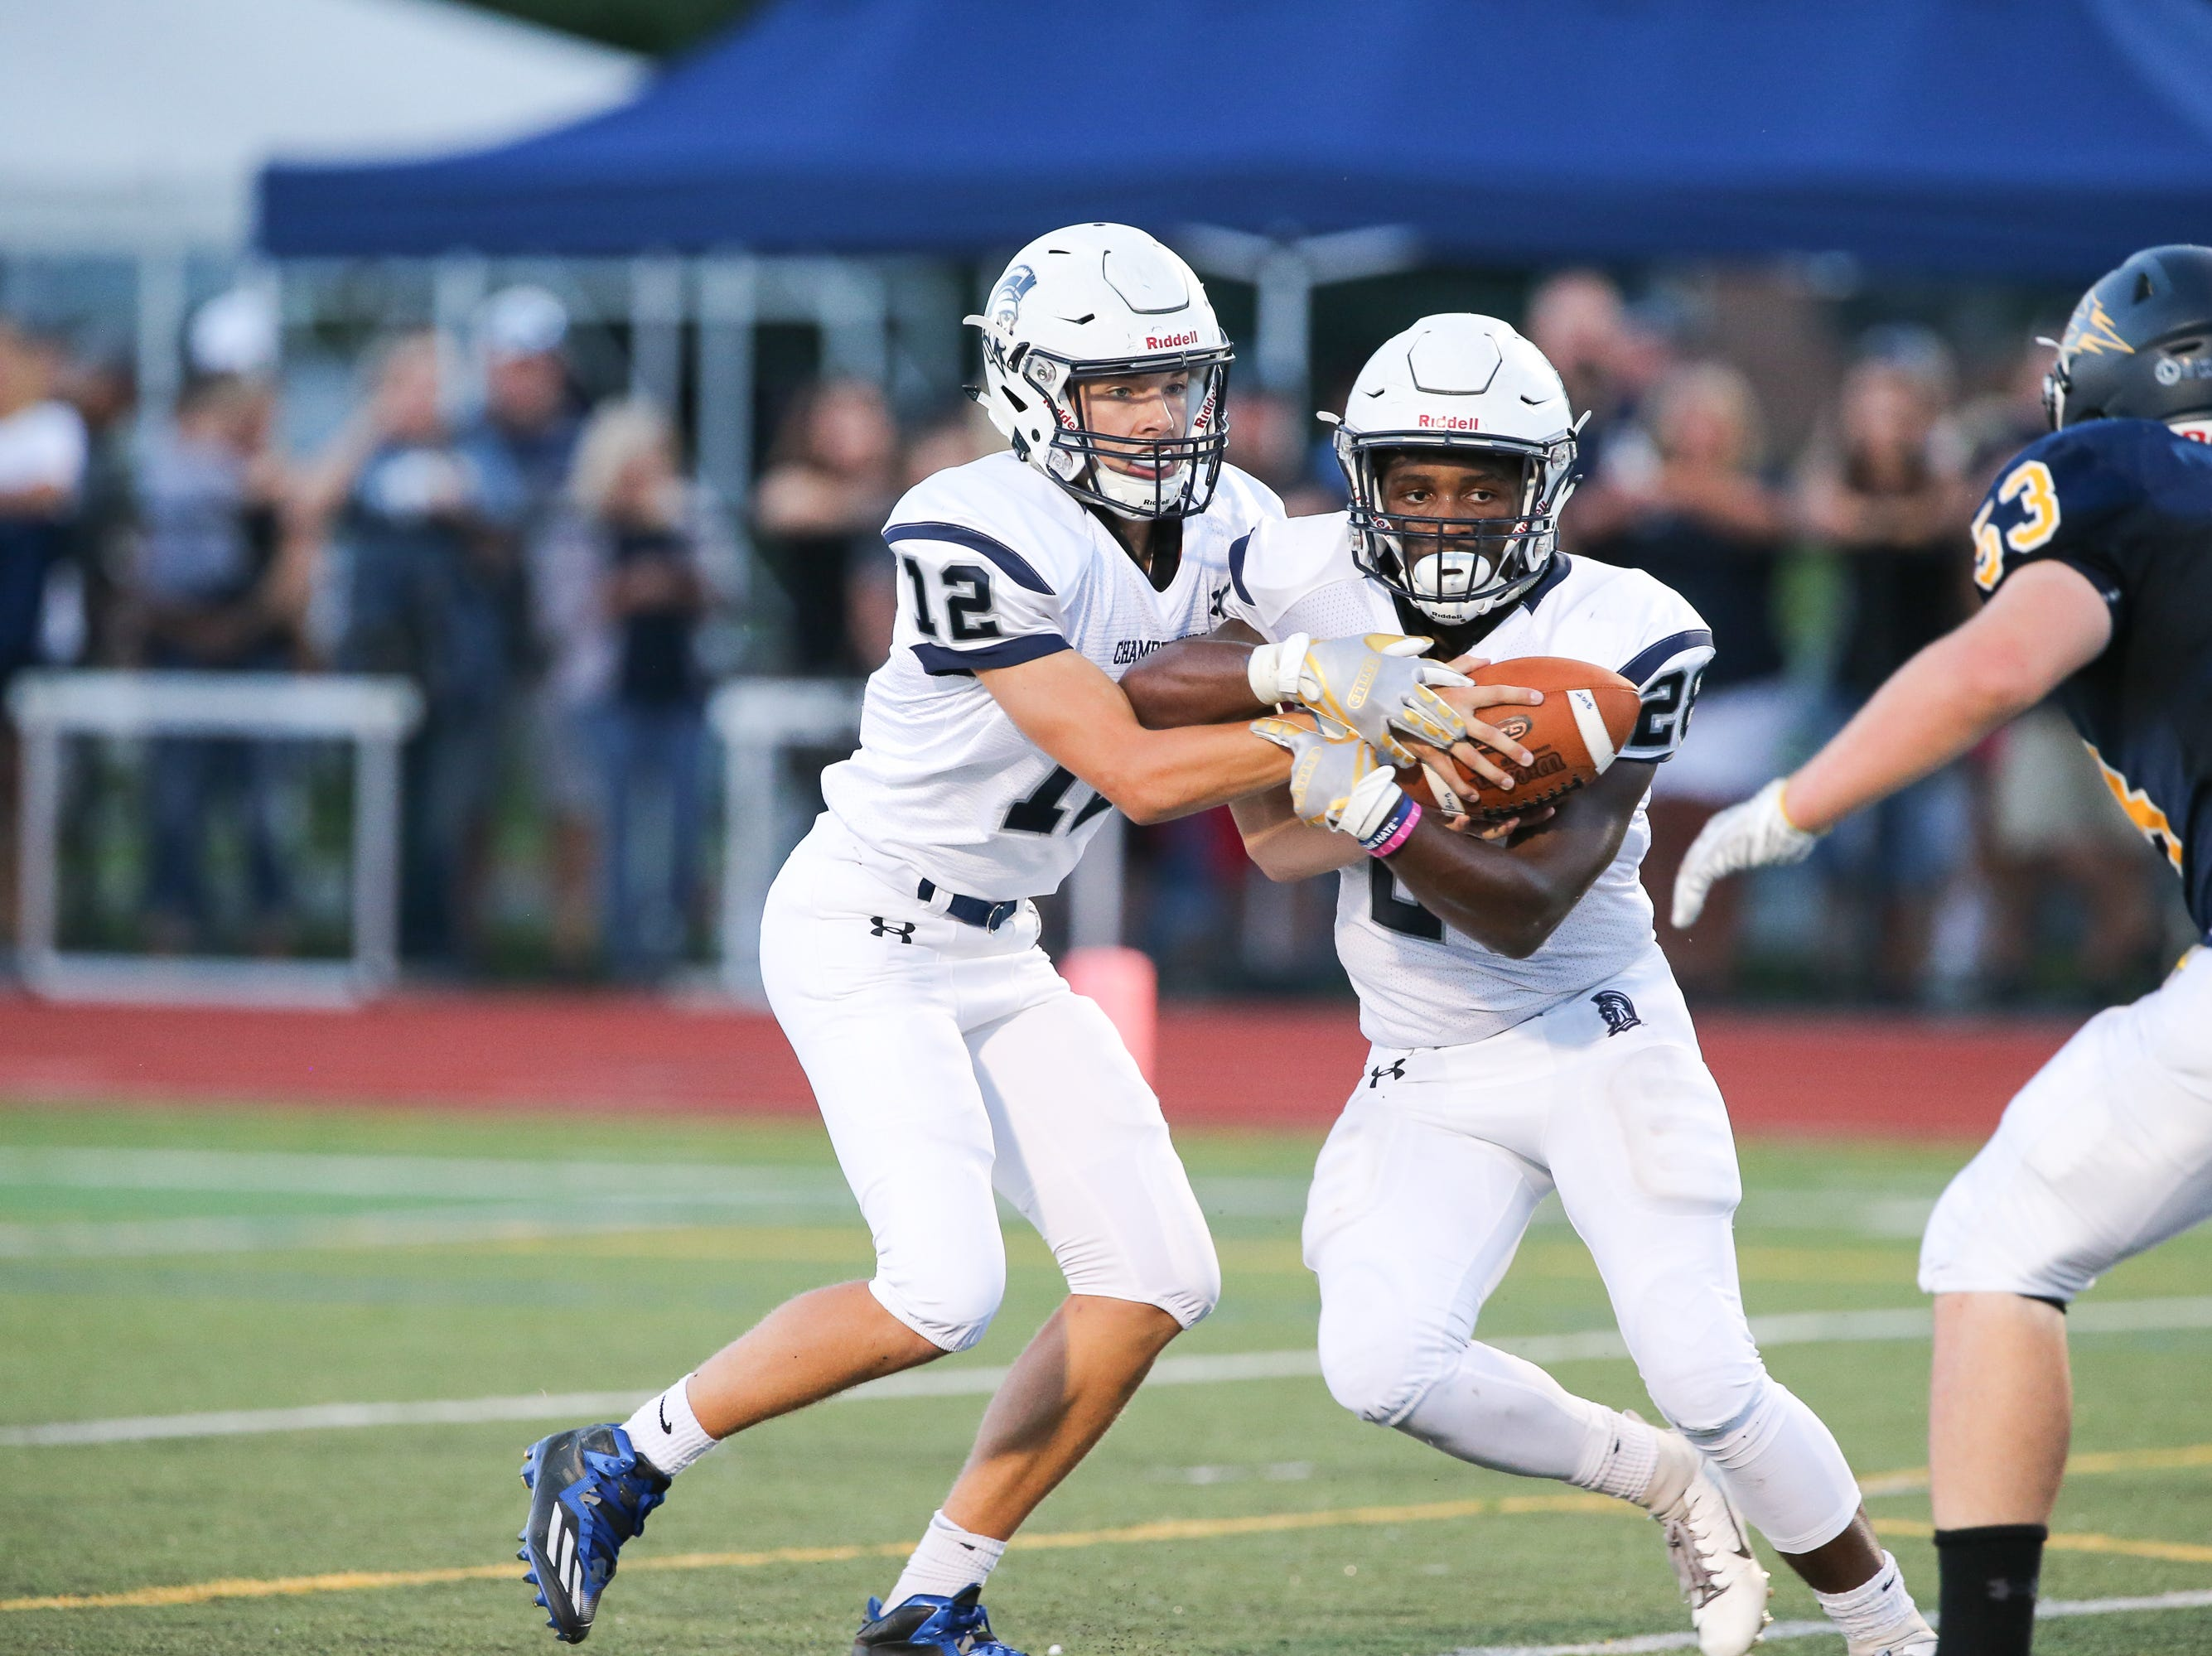 Chambersburg players protect the ball during the season opener versus Greencastle-Antrim on Friday, Aug. 24, 2018, in Greencastle. Chambersburg won, 48-13.